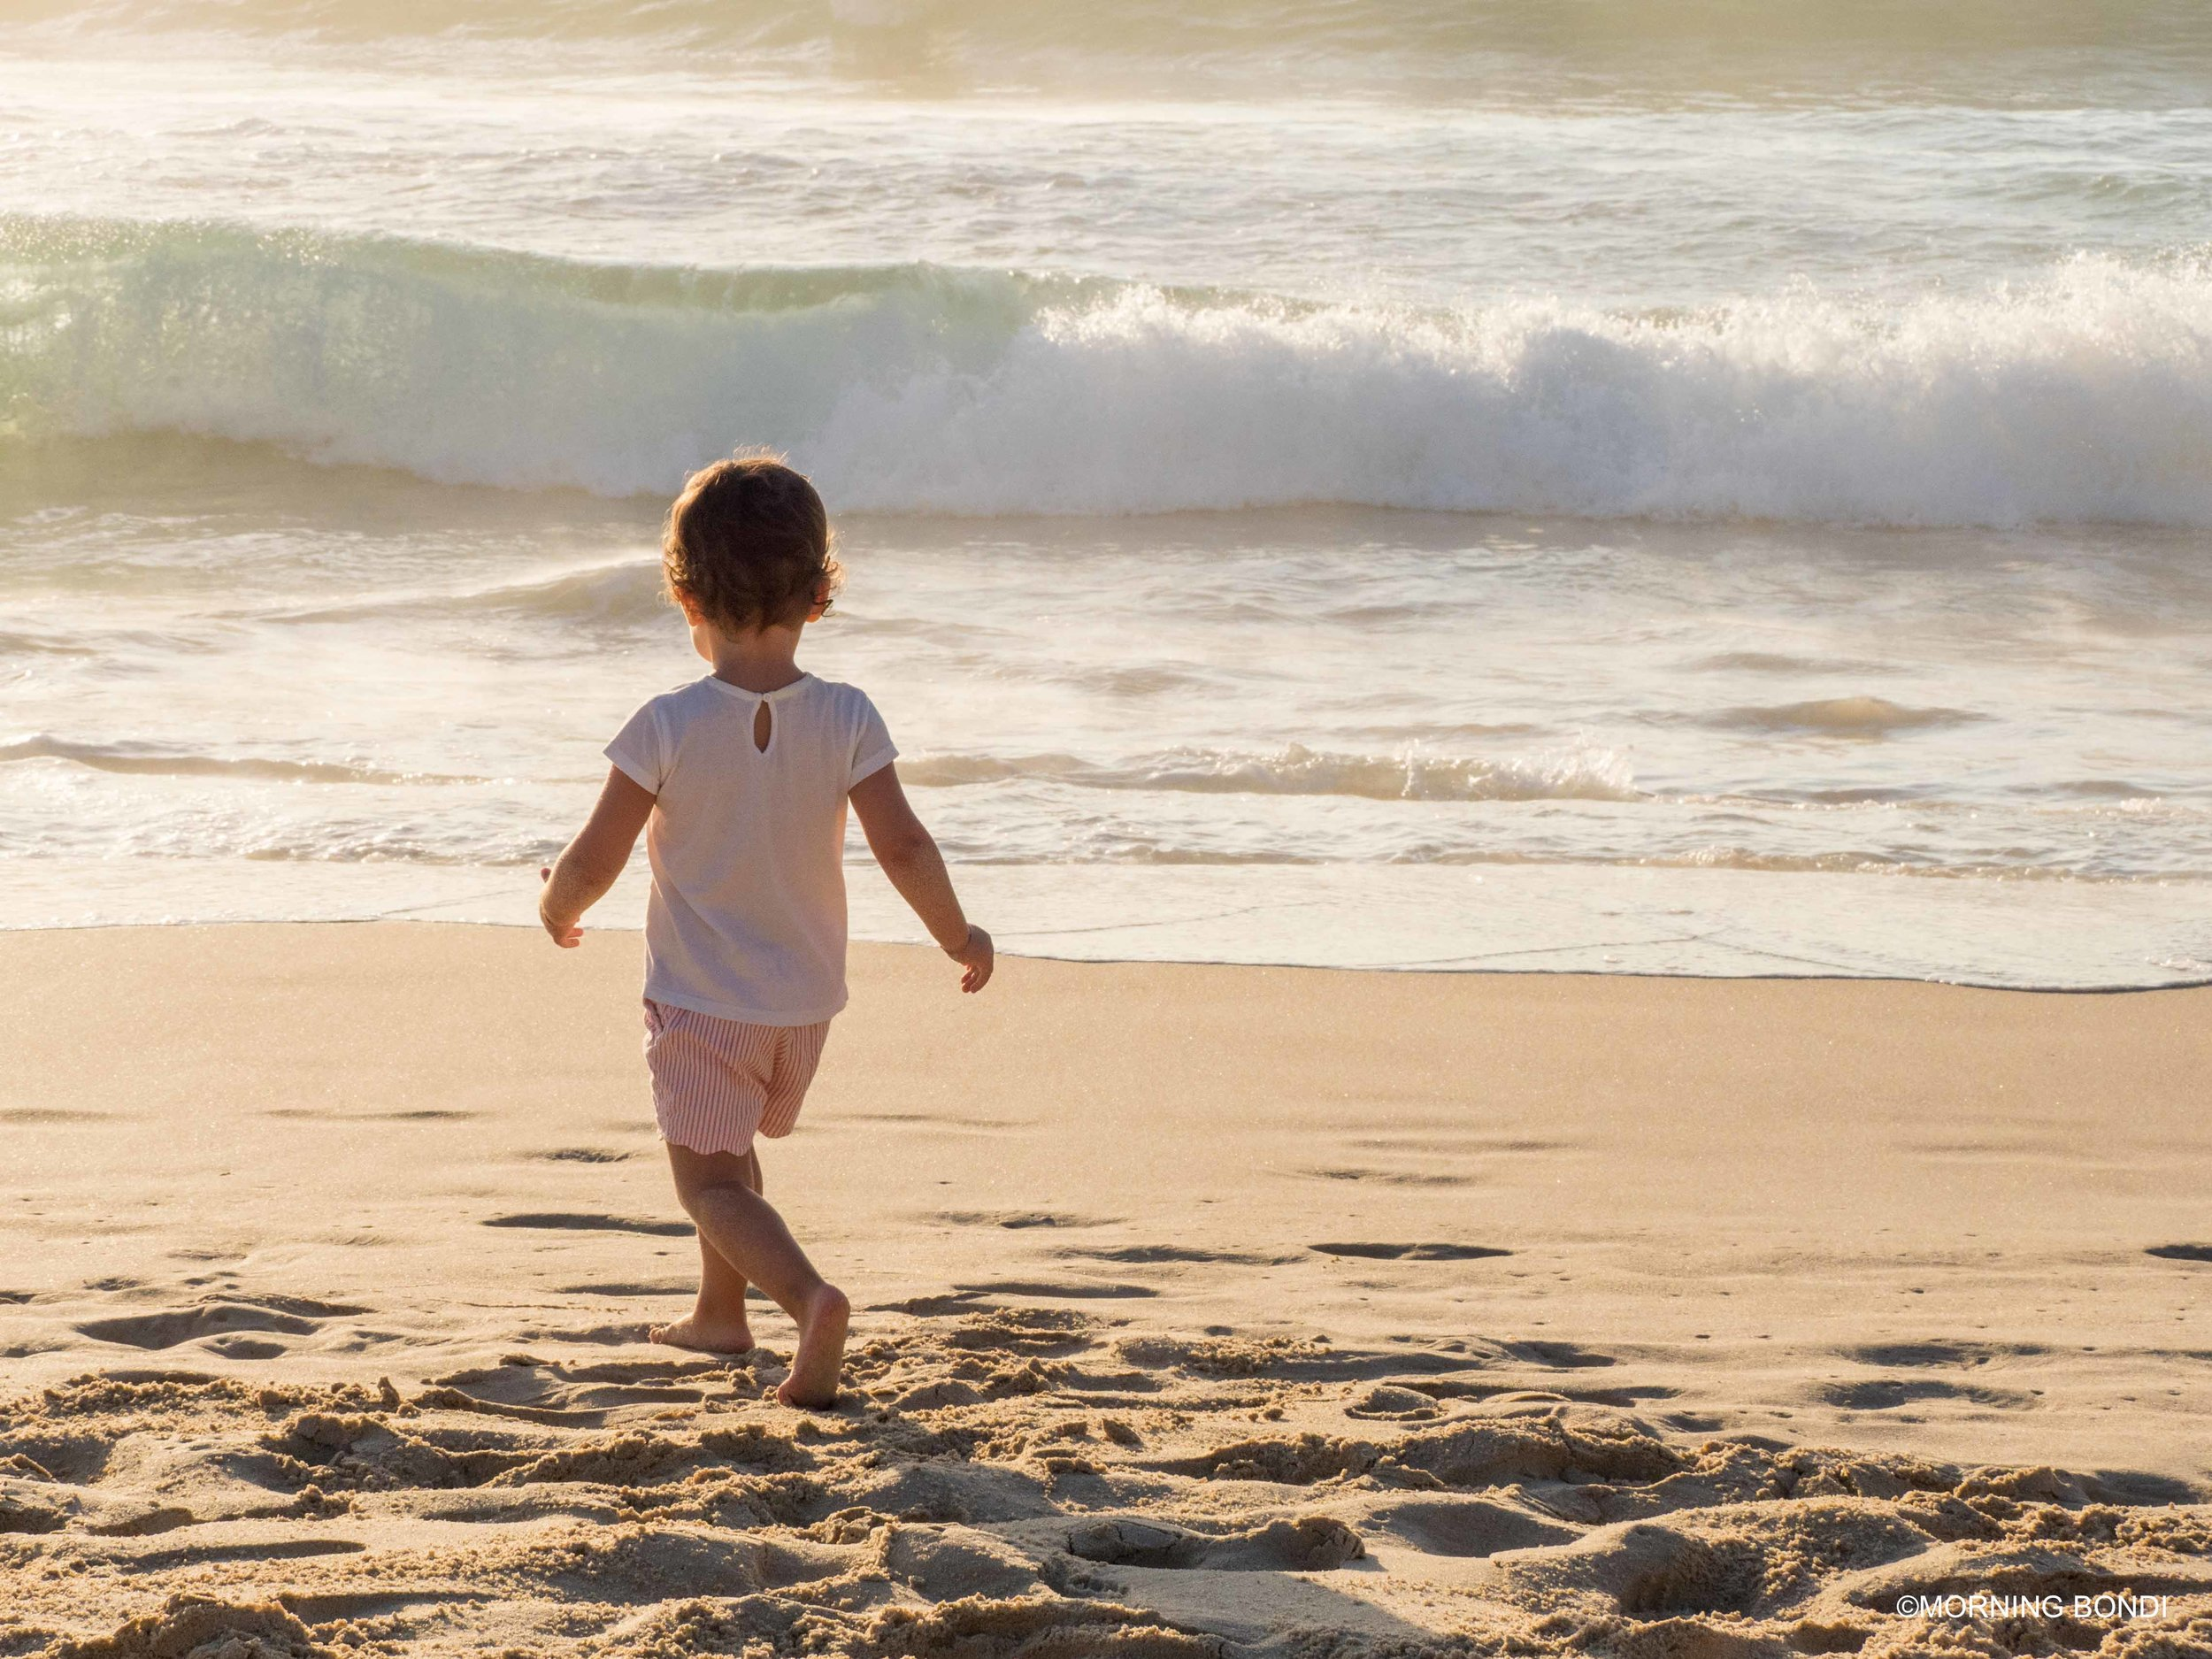 Kids in Australia are the luckiest, starting their days down the beach before going to daycare. Tough life!